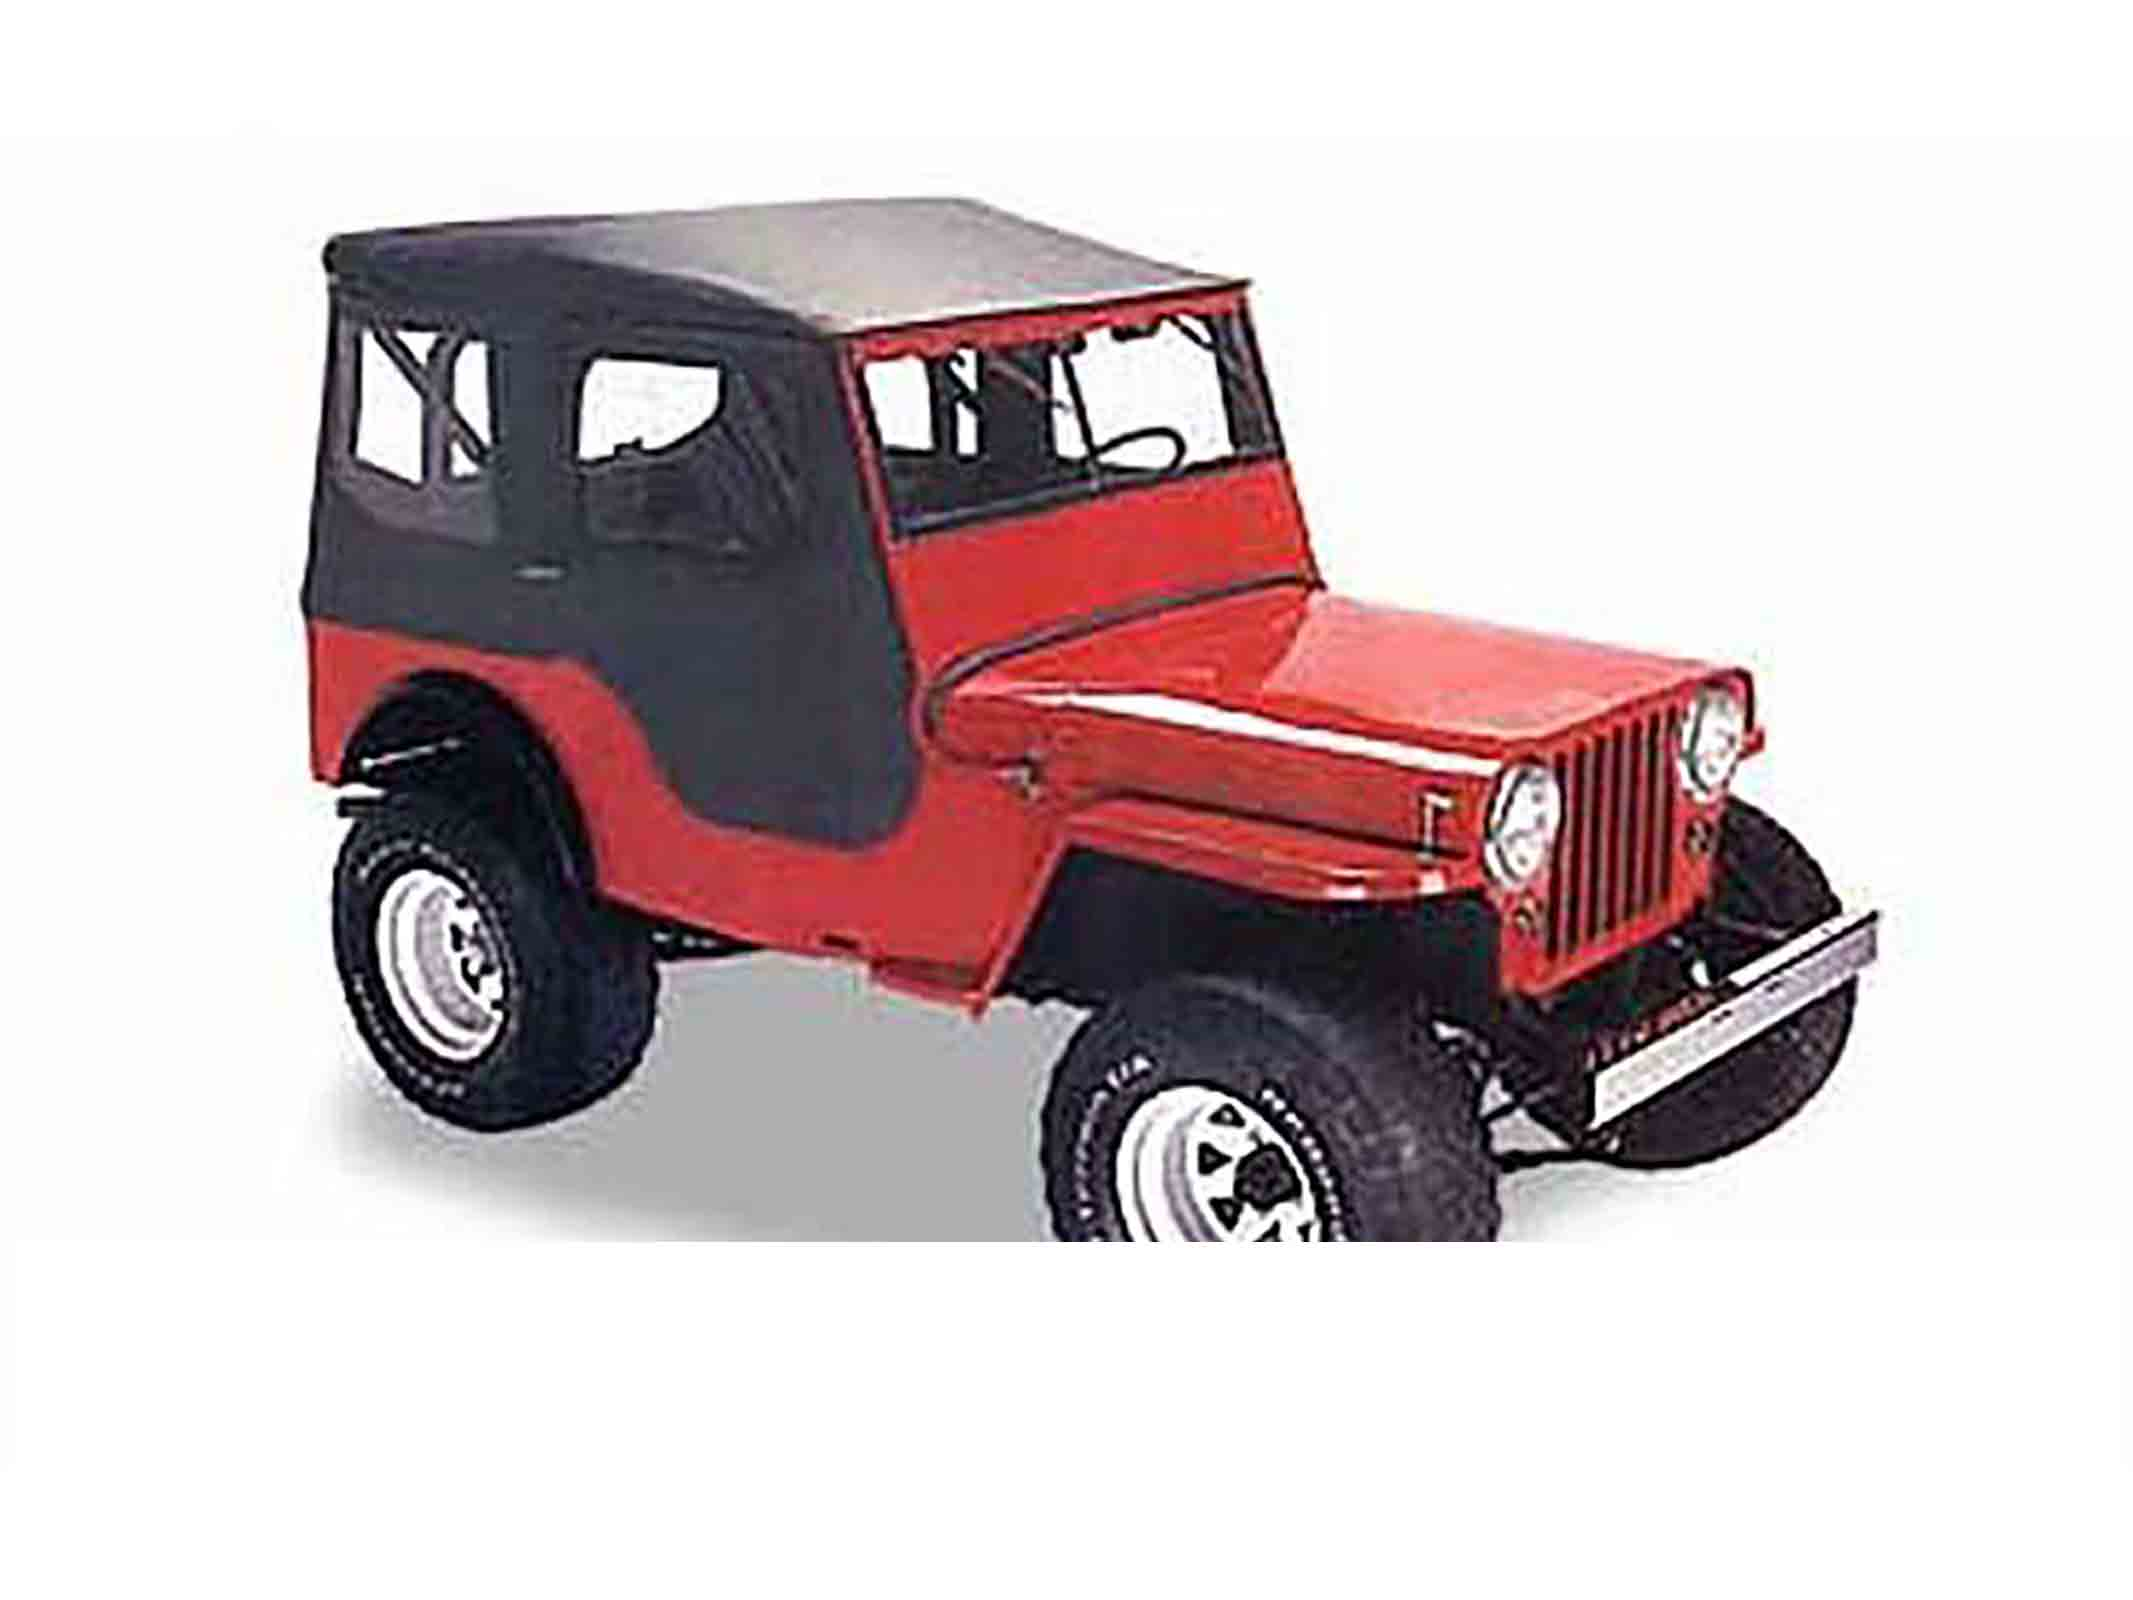 Tigertop softtop soft top capottina jeep cj 41 49 senza centina ricambi jeep